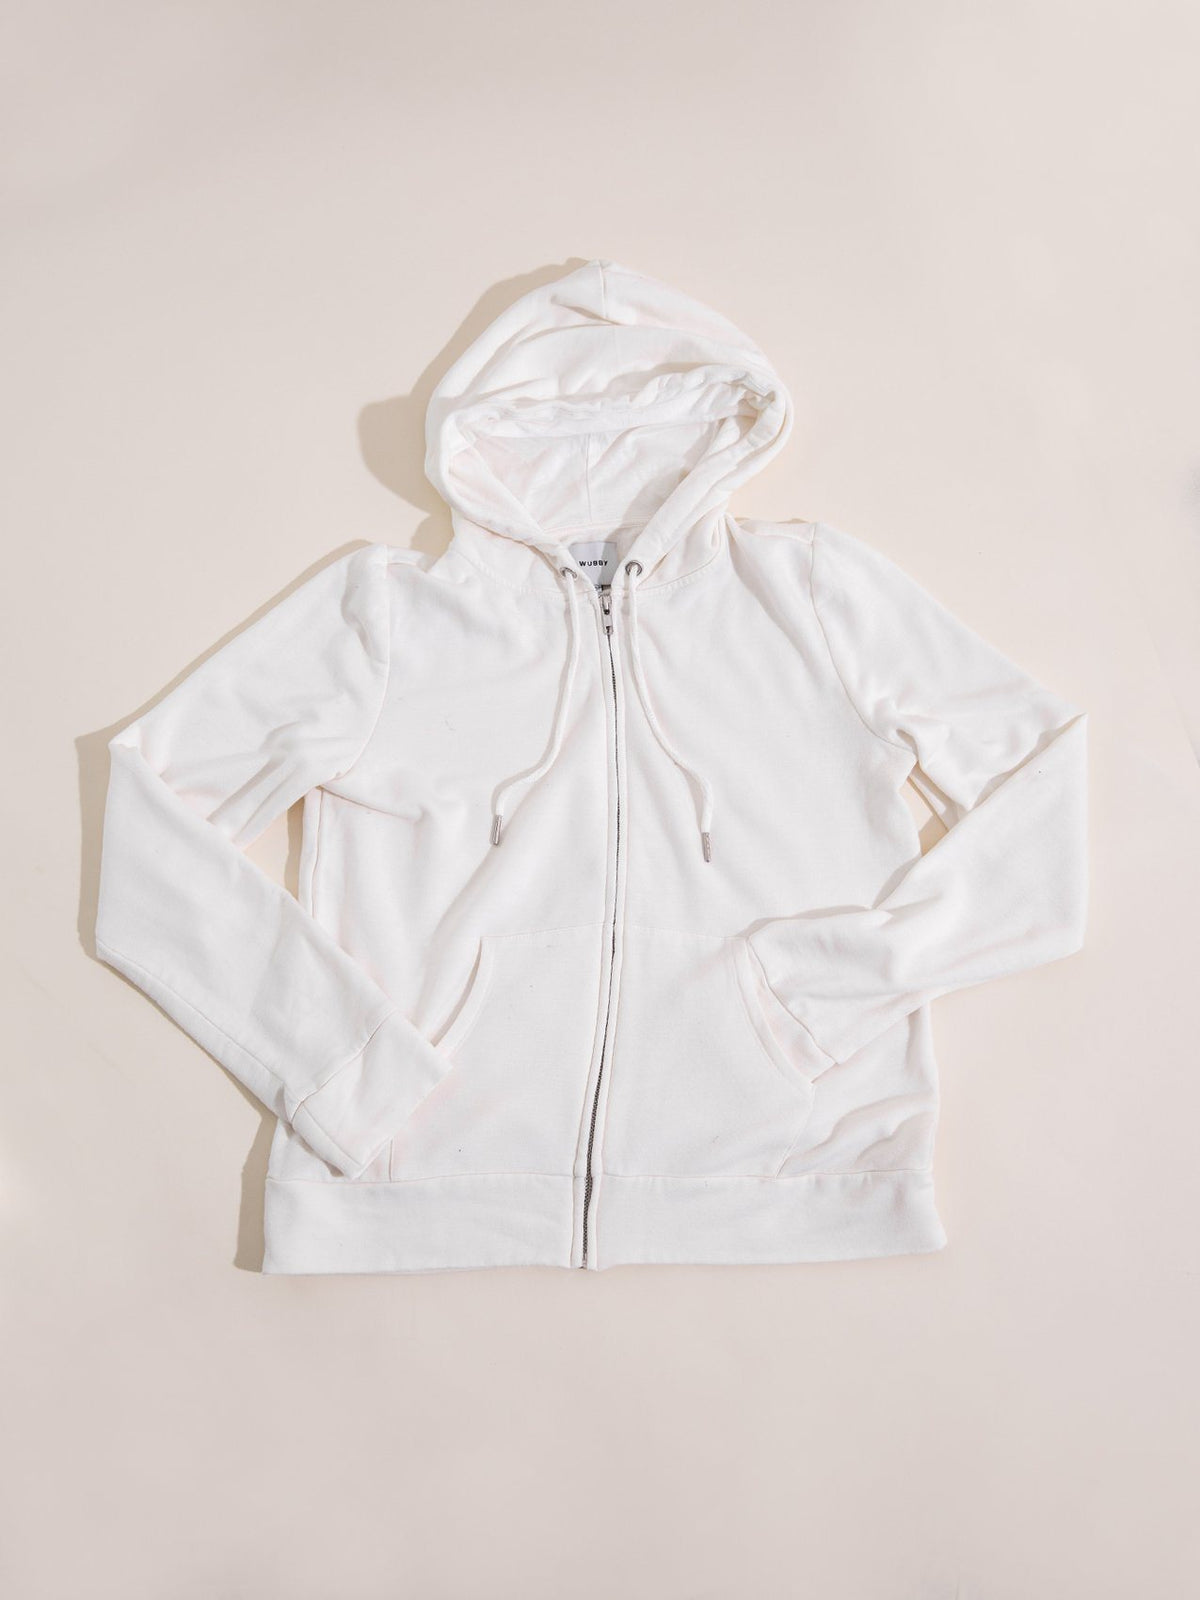 Claire Hoodie Sweater Thread & Supply Whipped Cream XS